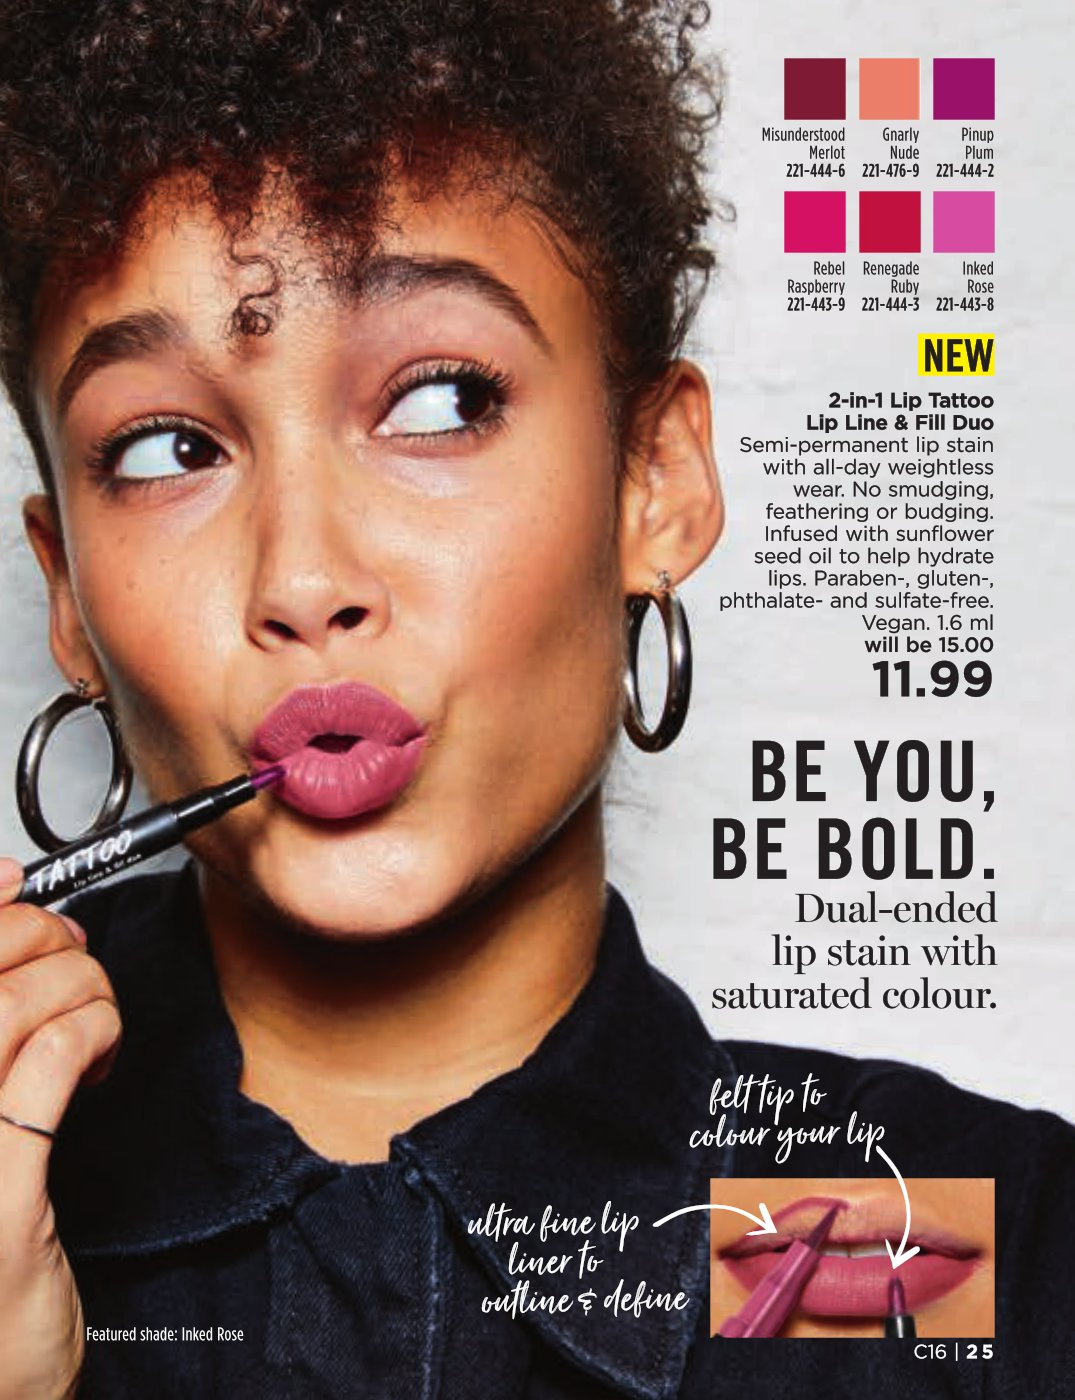 Avon has created its first 2-In-1 Lip Tattoo. Lip Tattoo features a slim felt tip pen that's perfect for lining, overdrawing and sculpting the lip line